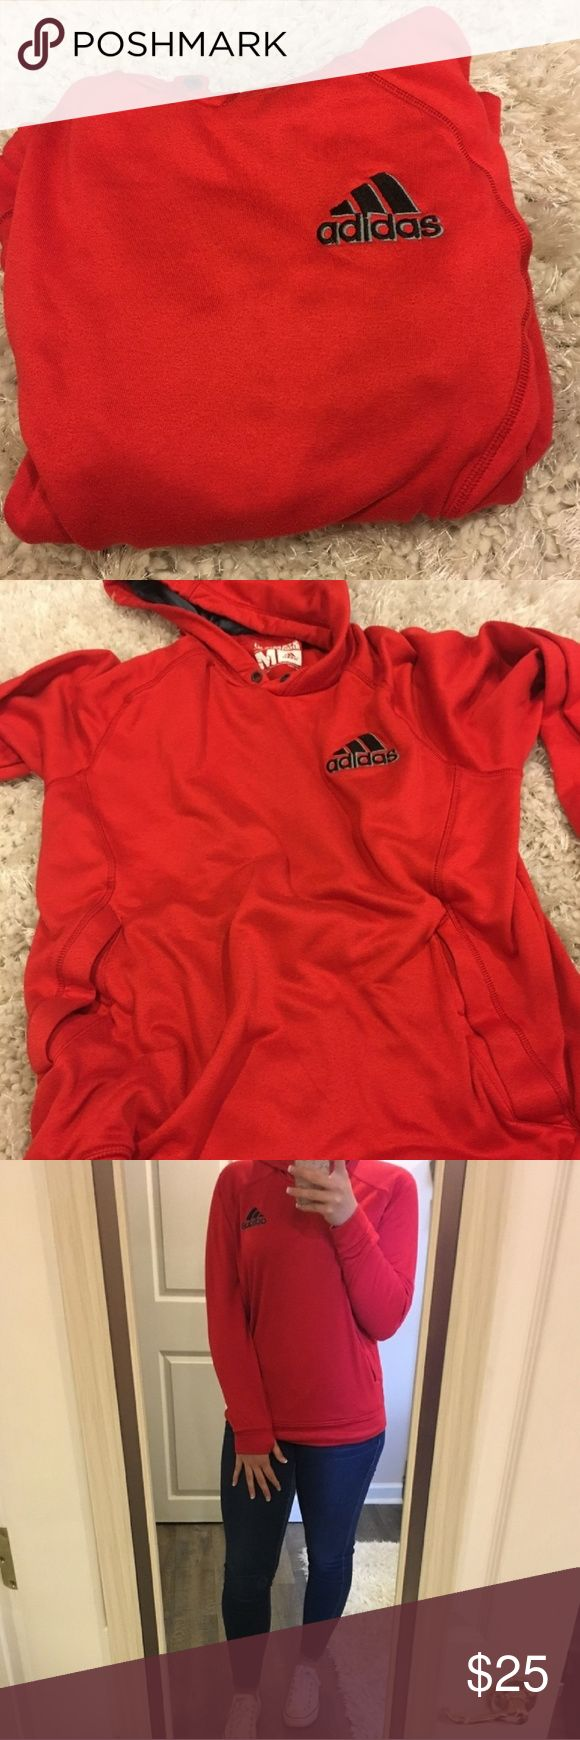 Red adidas hoodie Red adidas hoodie size M Nothing wrong with it just don't fit adidas Sweaters